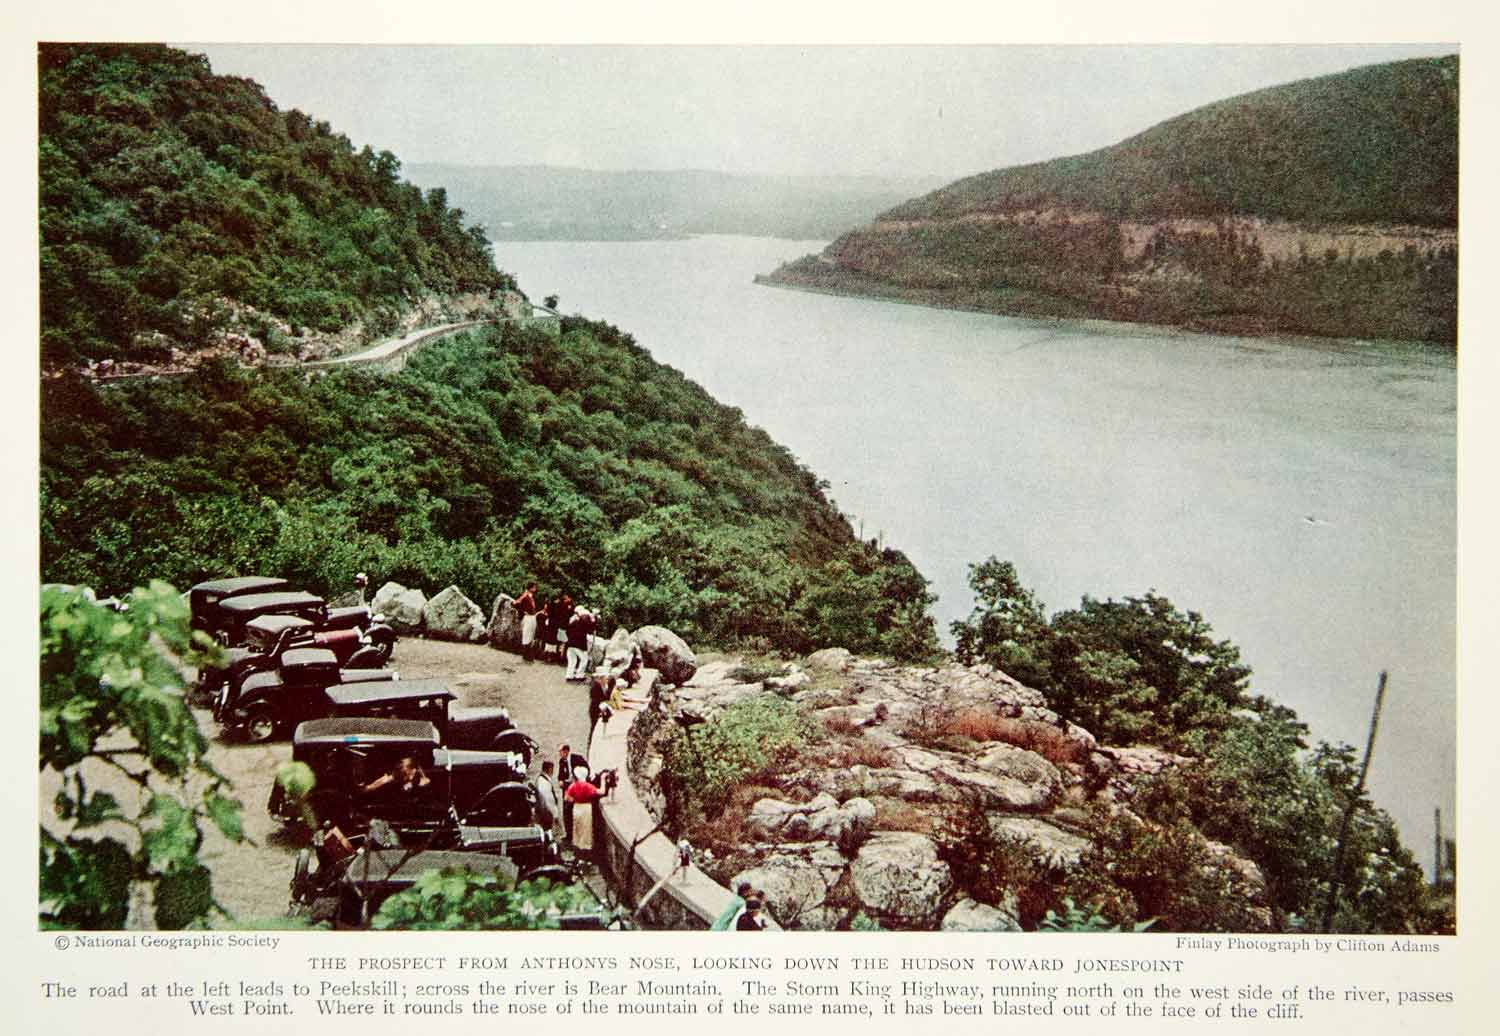 1933 Color Print Jonespoint Hudson River View Landscape New York State NGMA3